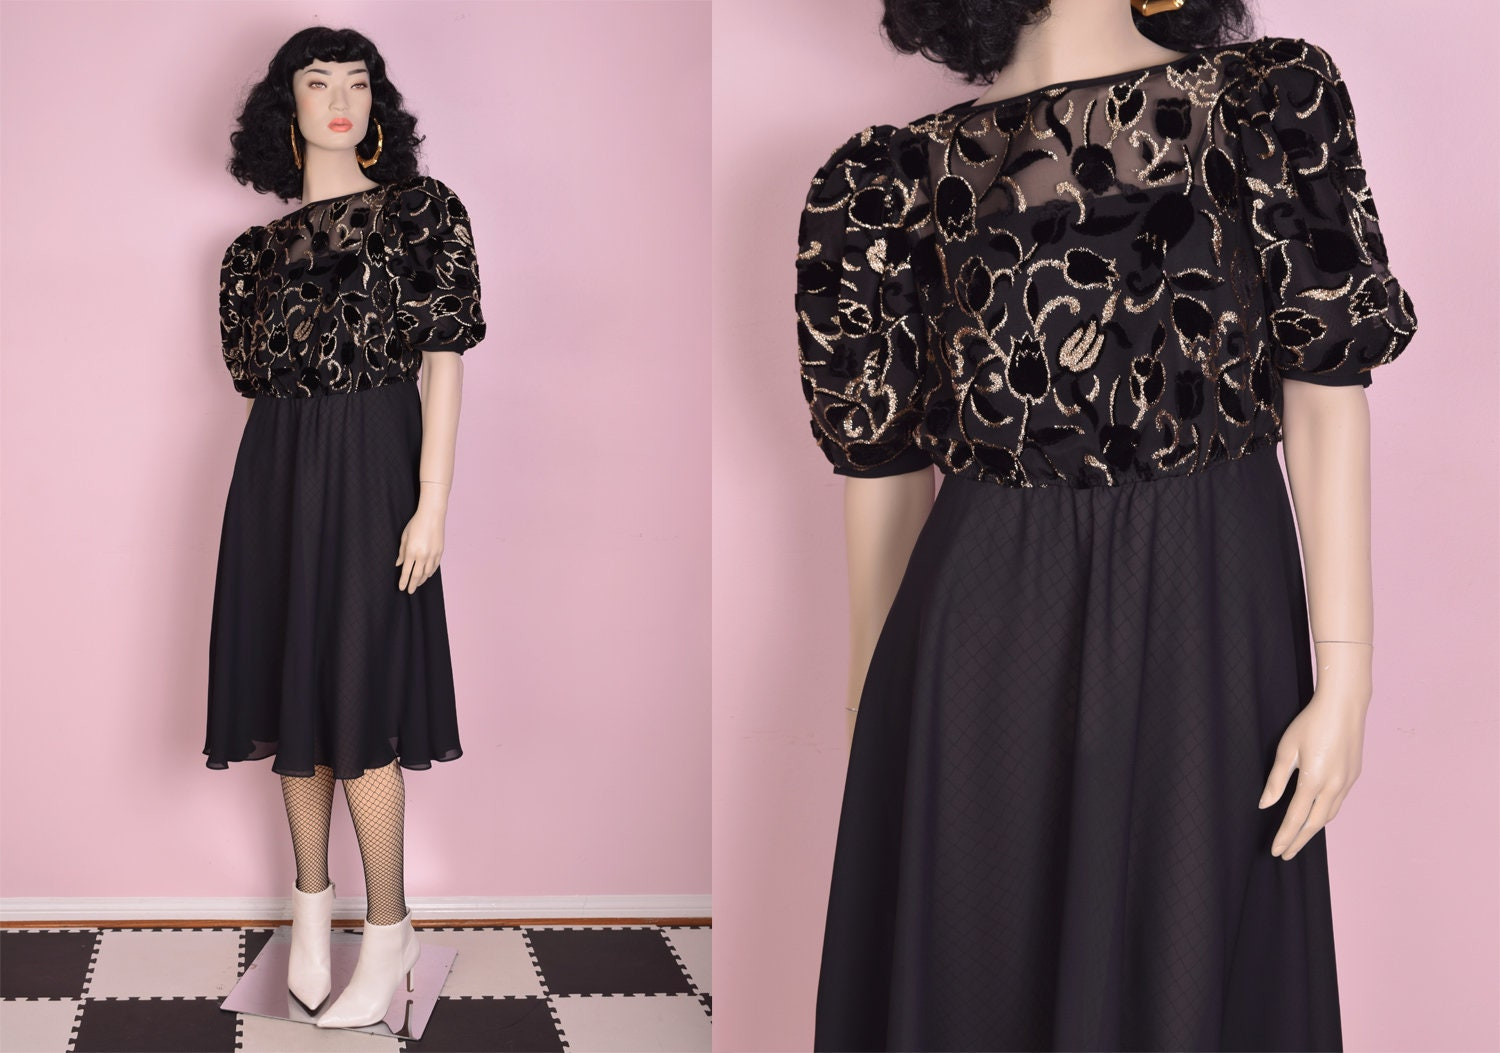 80s Dresses | Casual to Party Dresses 80S Black  Gold Floral Flocked Puffy Sleeve Party Dress Medium 1980S $41.22 AT vintagedancer.com